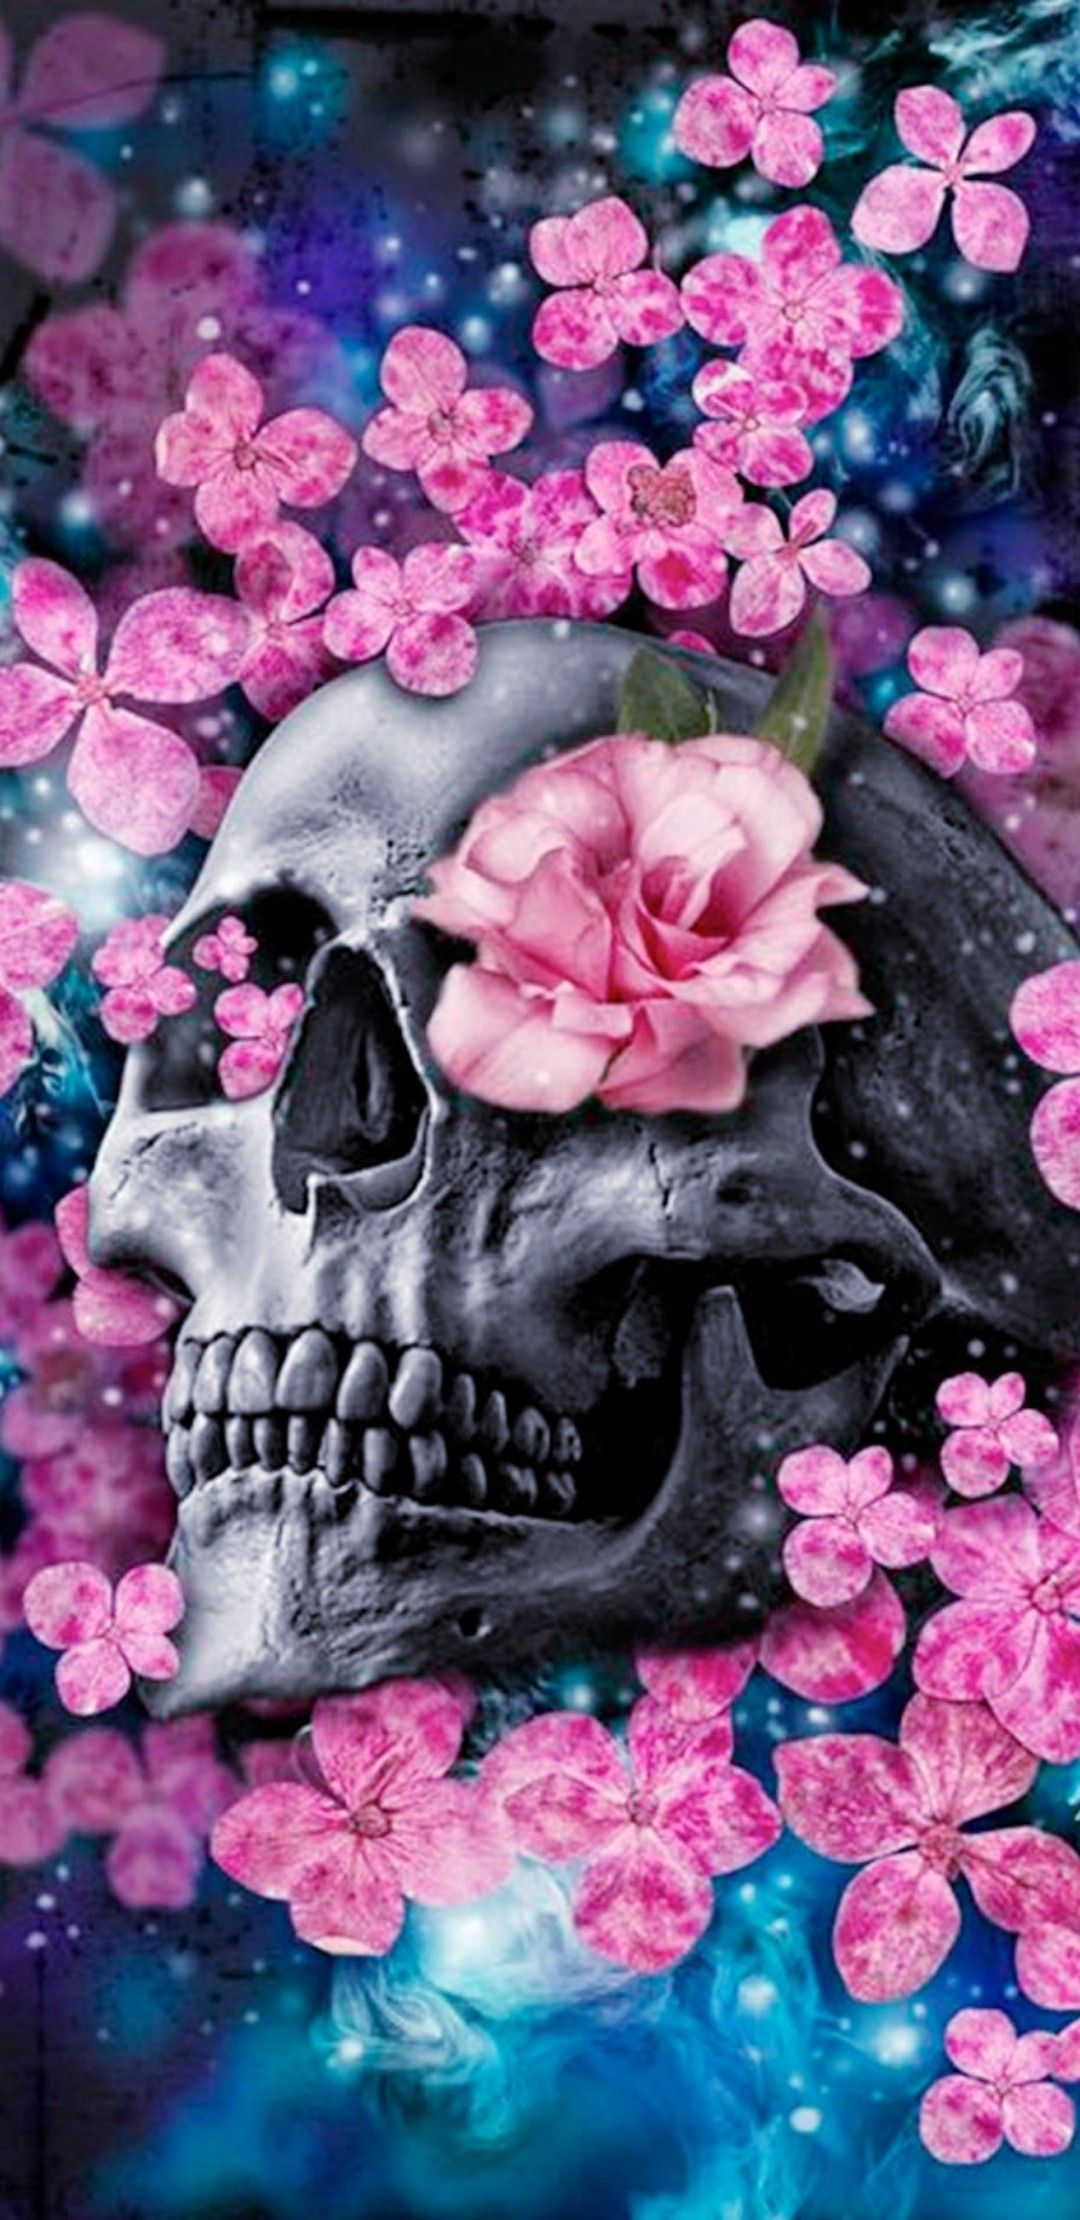 Pretty Skull Wallpaper Skull Art Sugar Skull Art